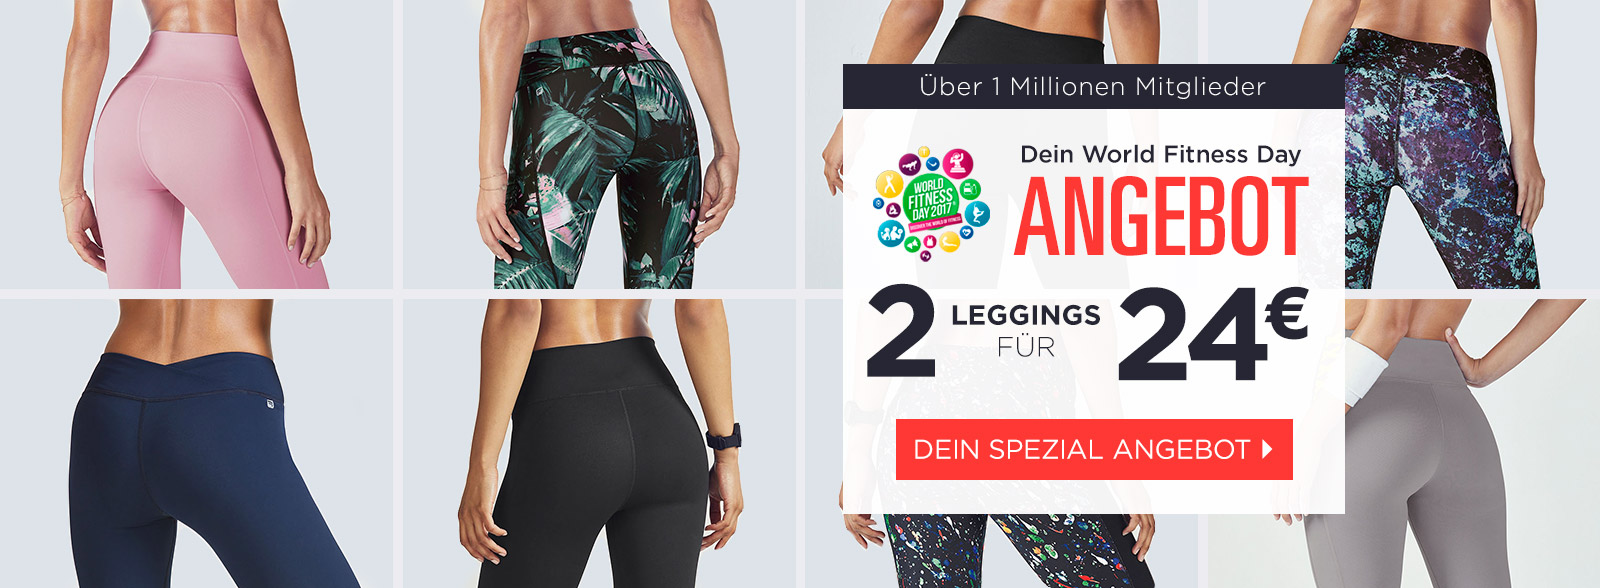 Best leggings Offer . 2 legggings for £24